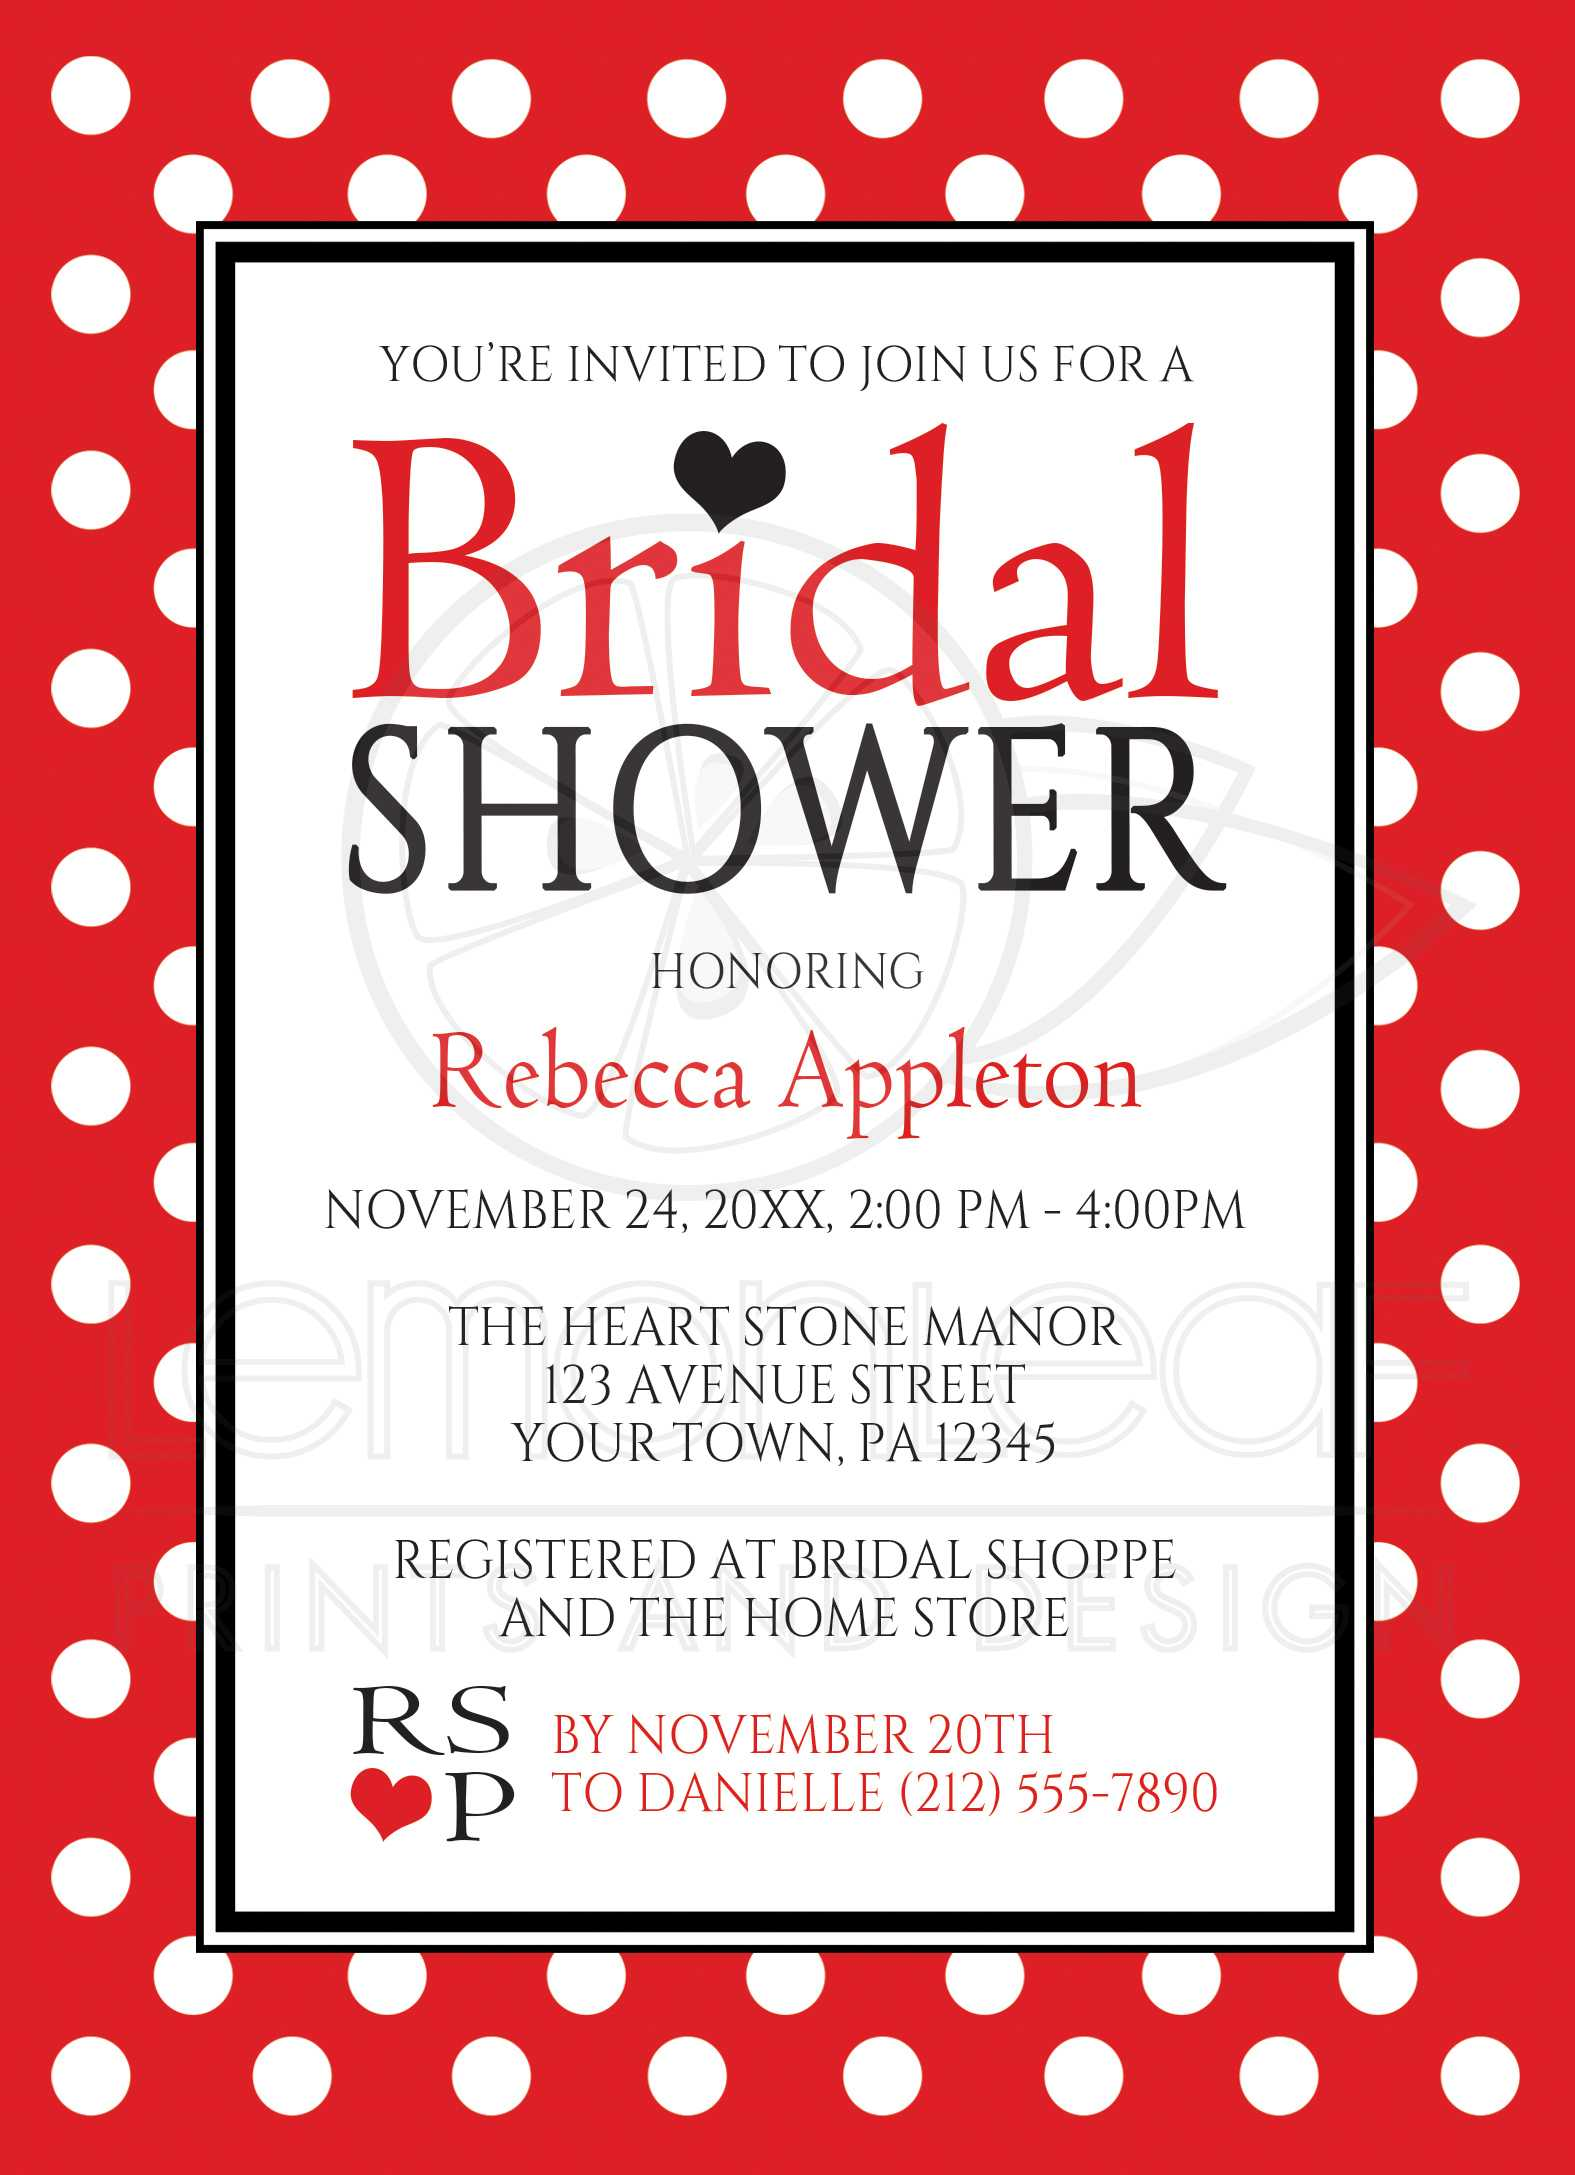 bridal shower invitations polka dot red and white